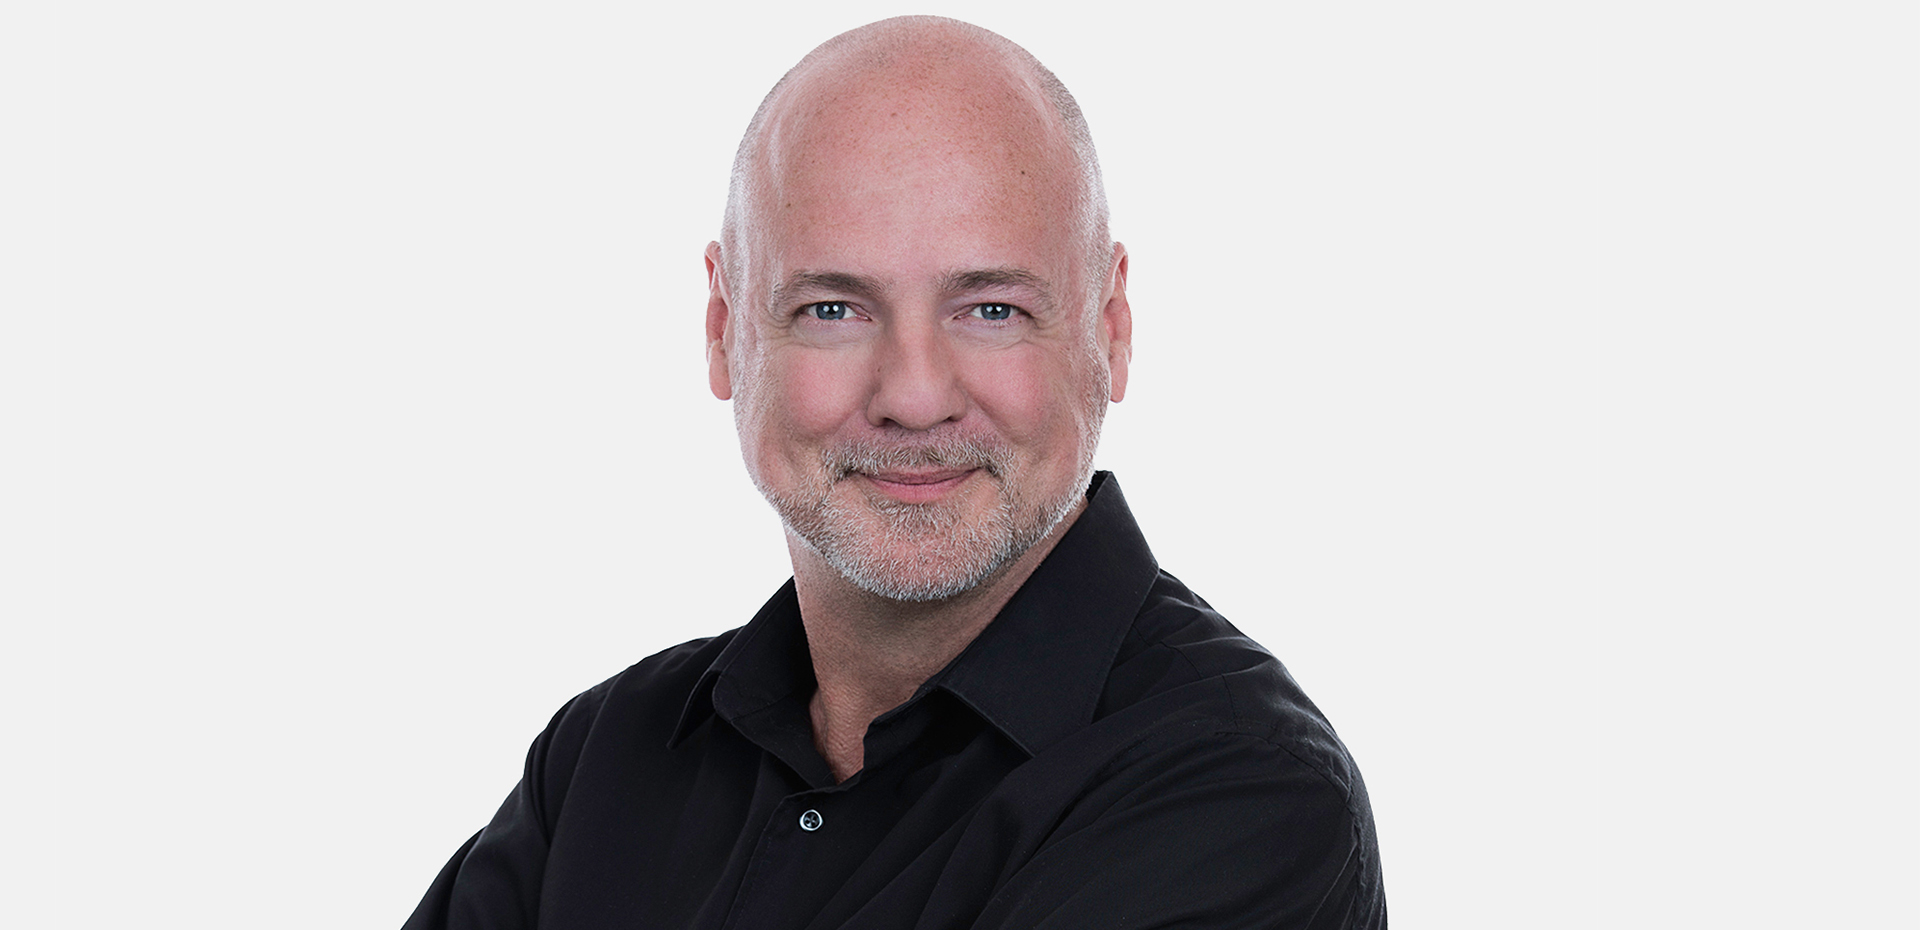 NEWSTALK 610 CKTB in St. Catharines Announces New Weekday Lineup